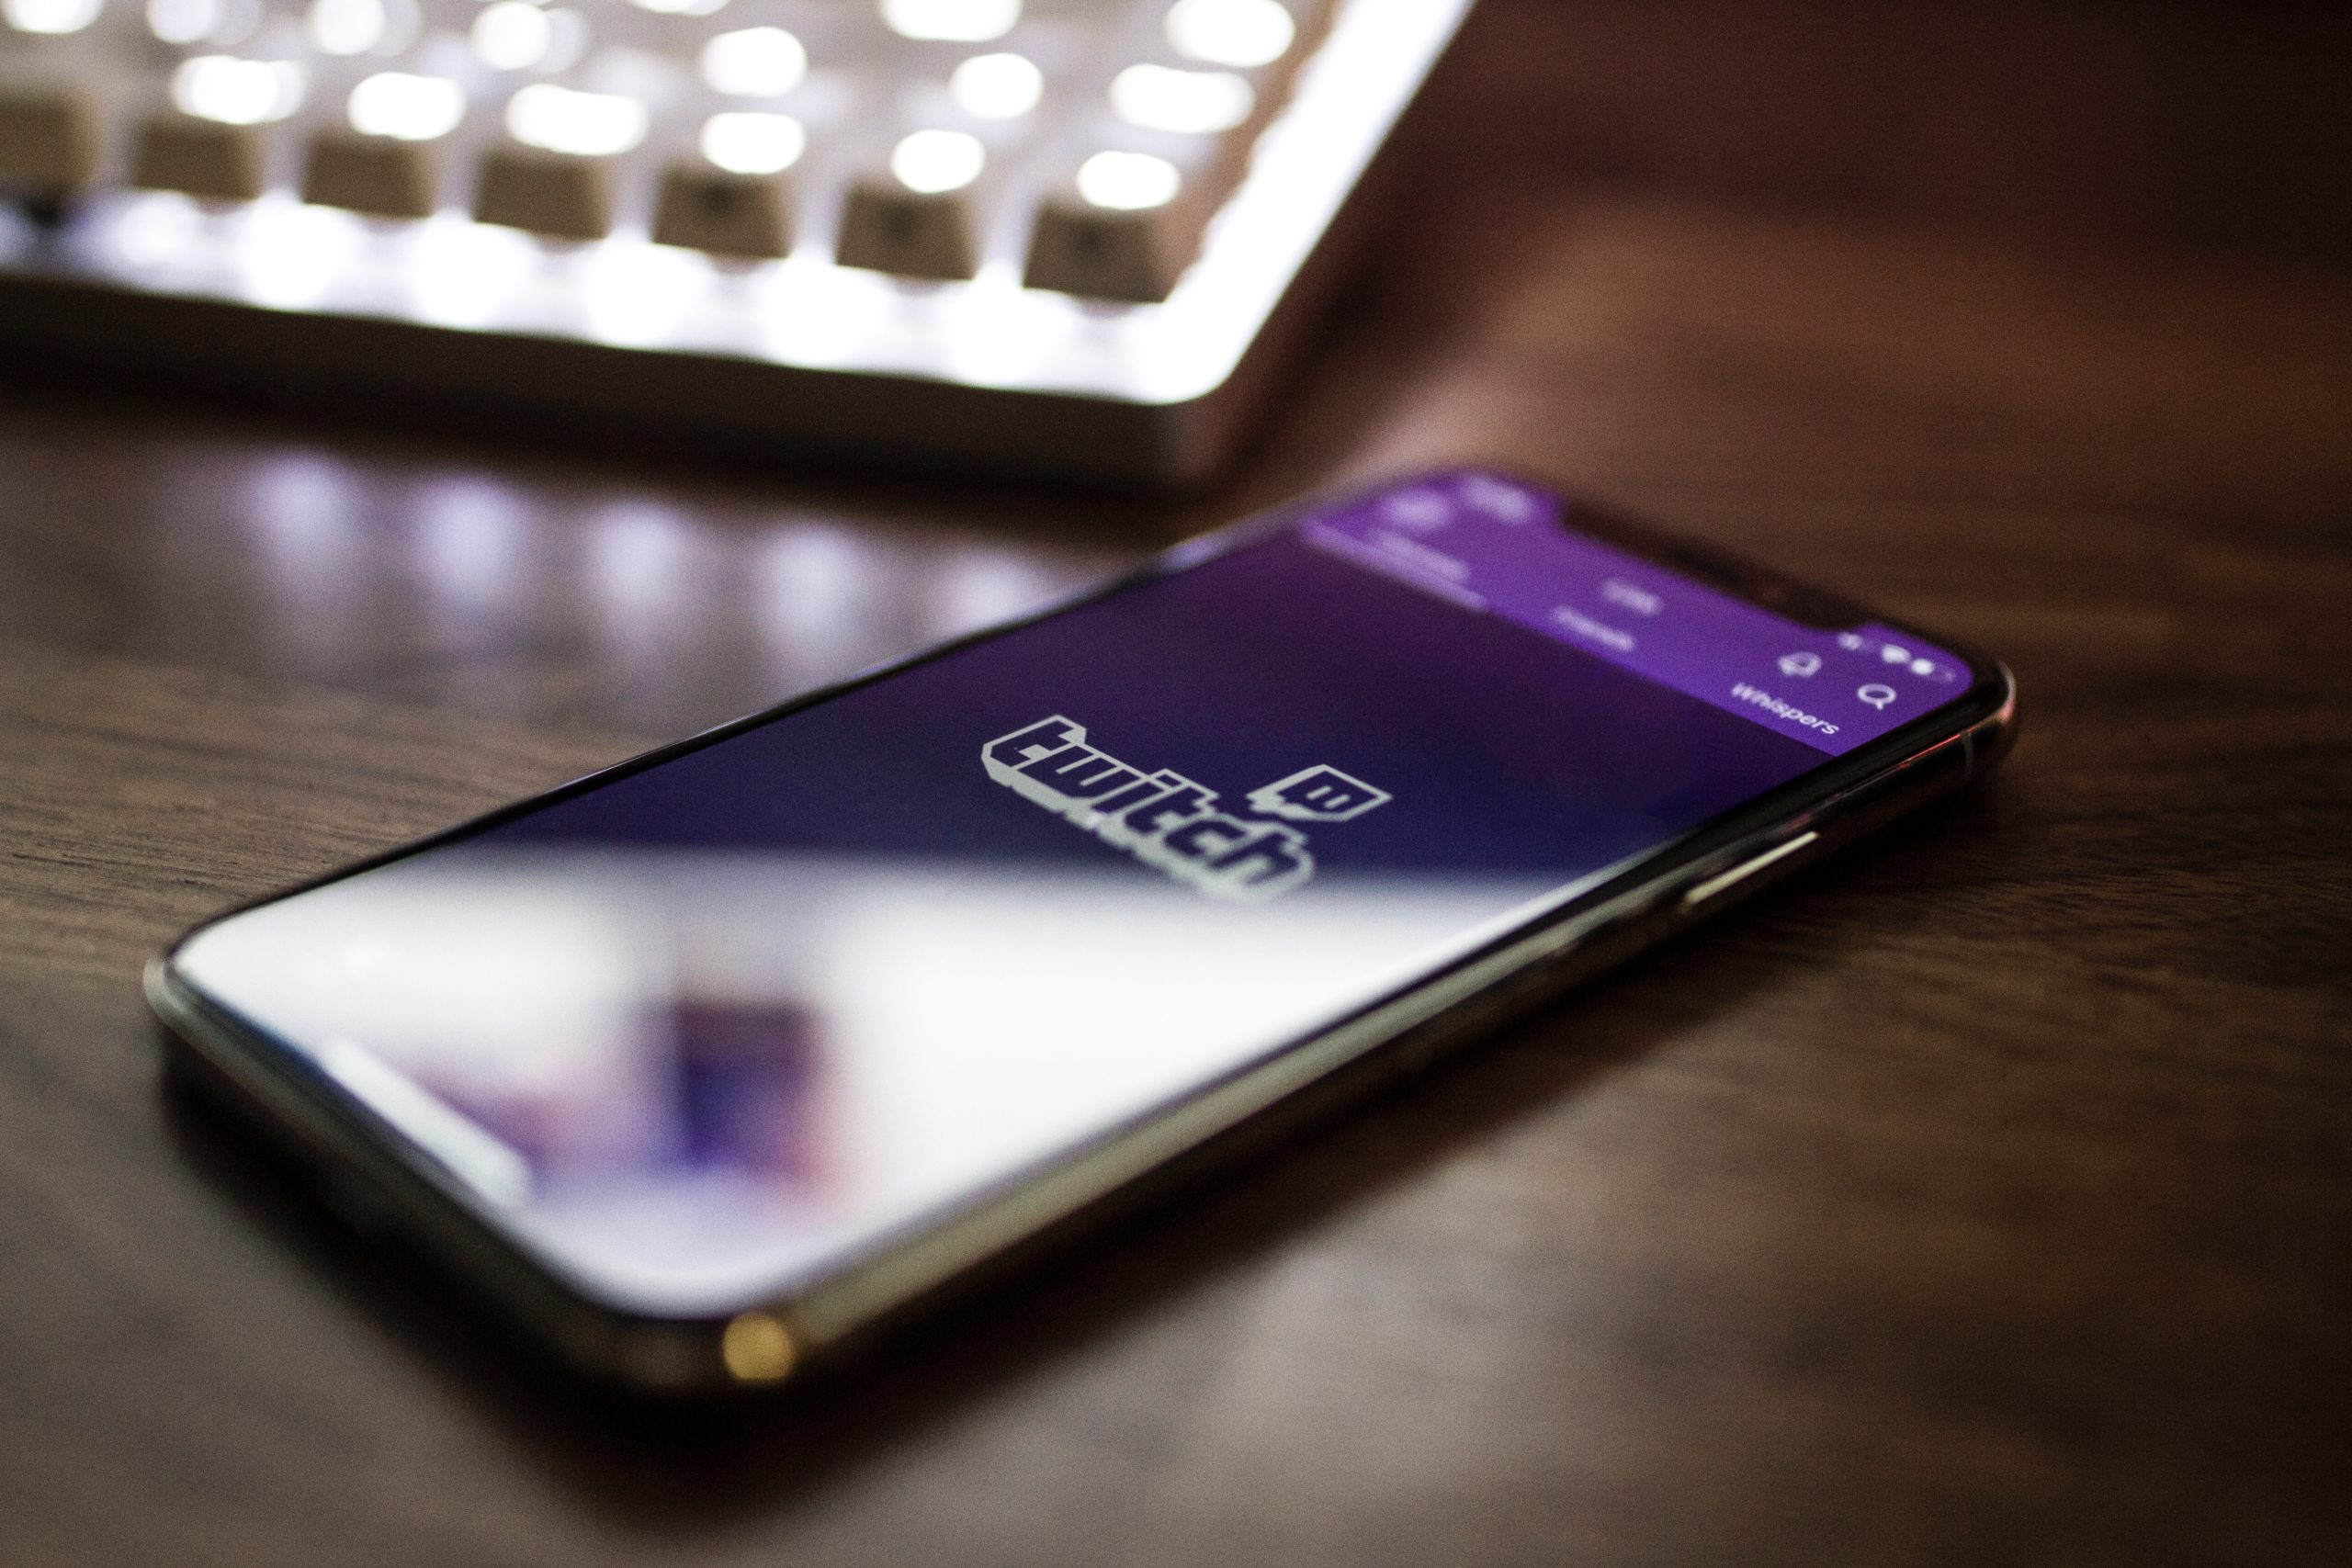 Twitch is one of the rising online services that gives streamers a quality experience online.